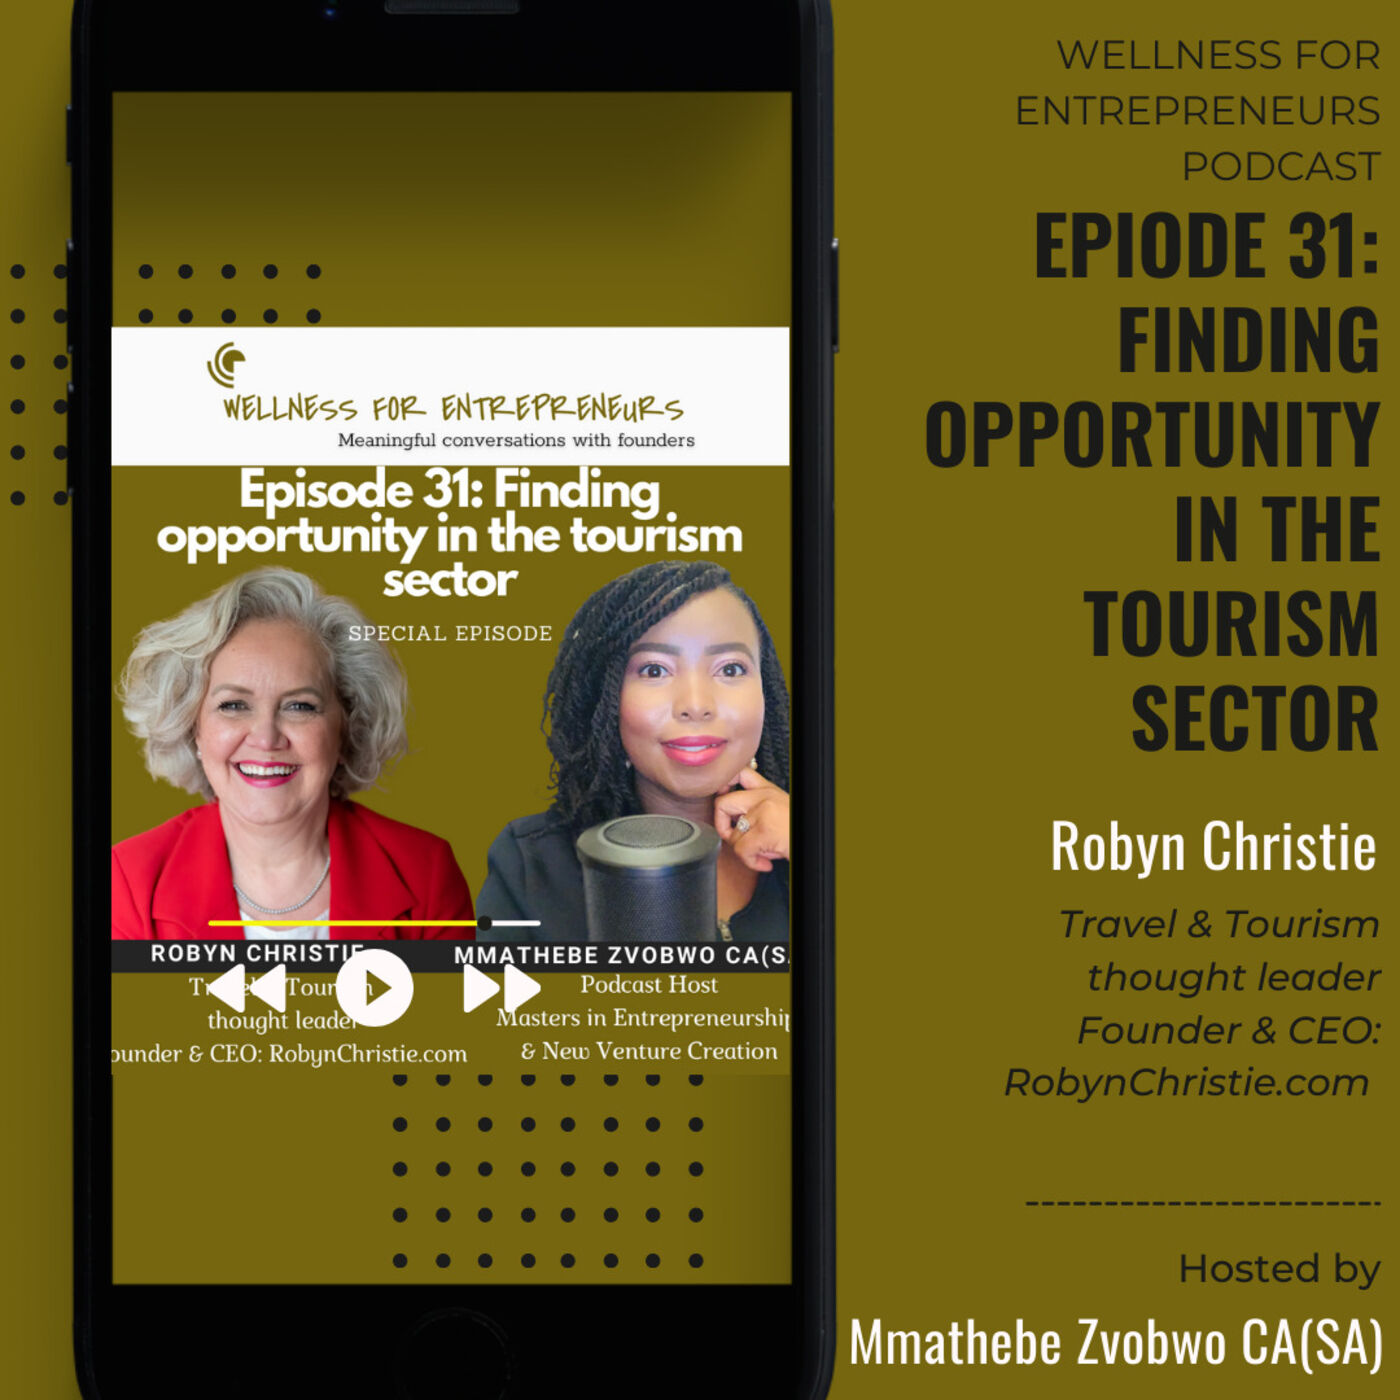 Episode 31: Finding opportunity in the tourism sector, with Robyn Christie